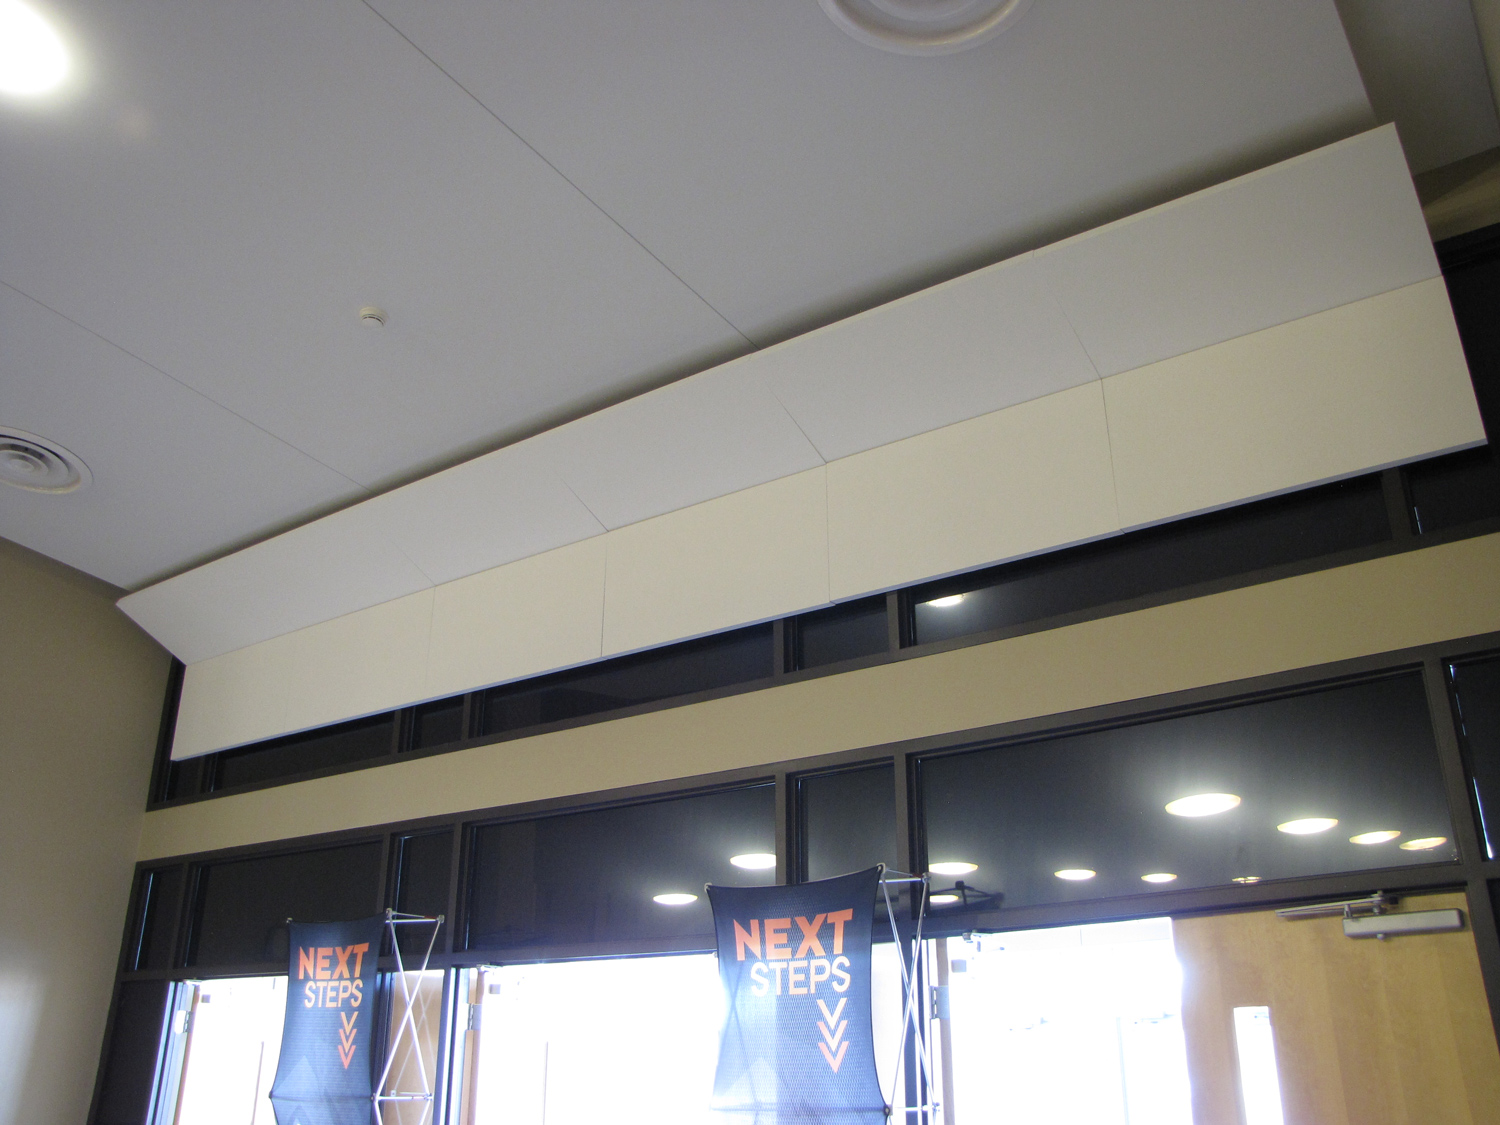 Acoustic treatment broadway panels in prairie ridge ceiling